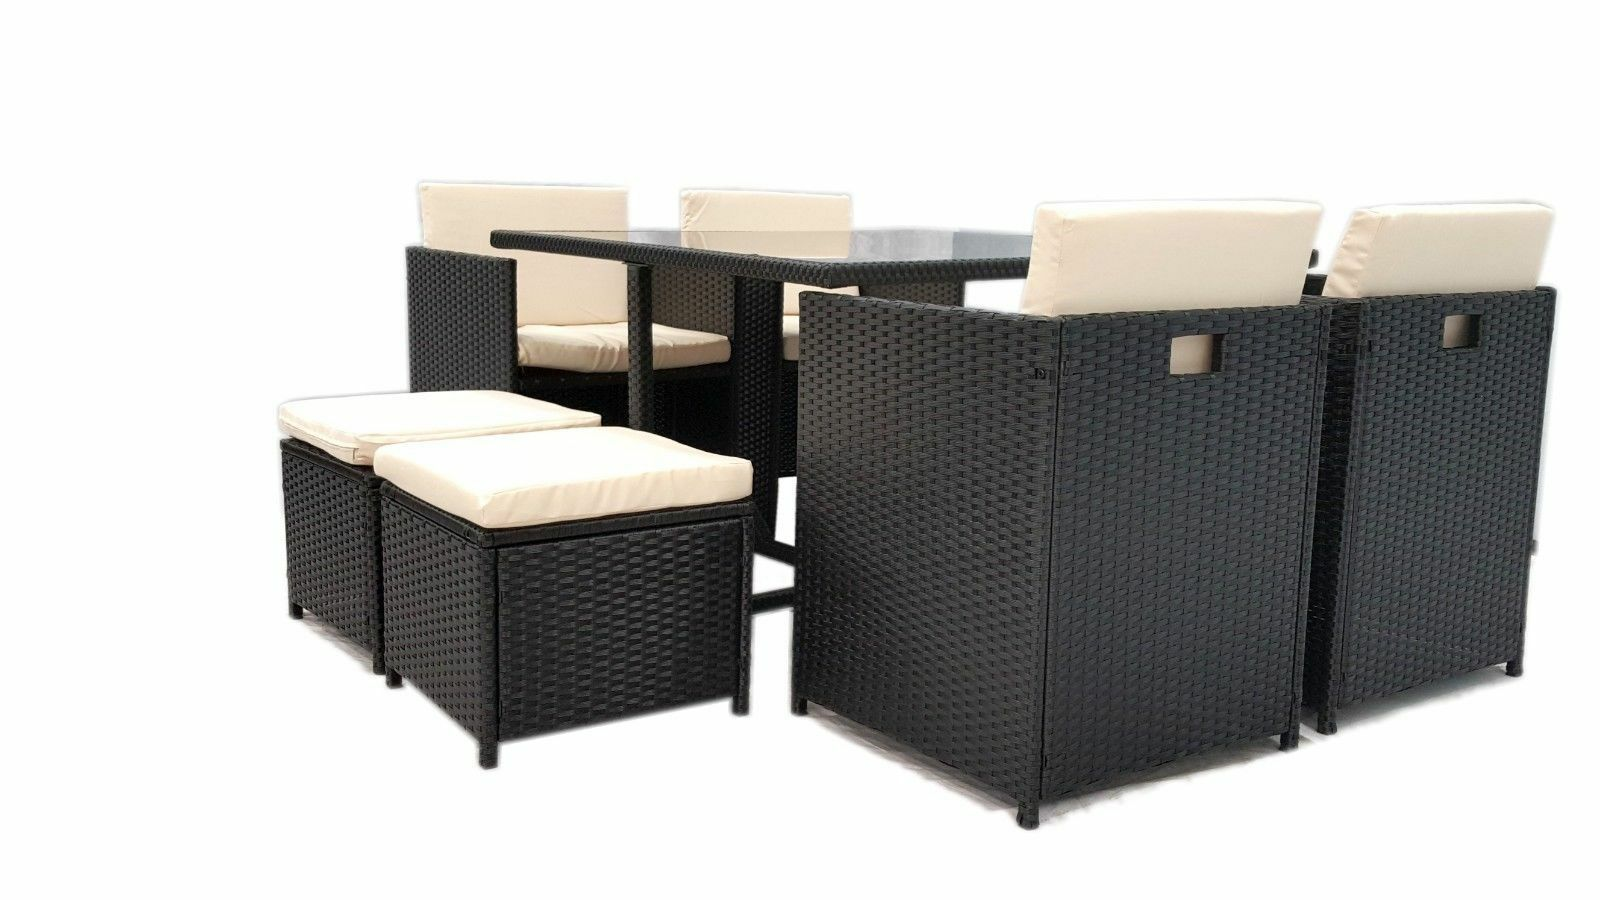 Wicker Outdoor Dining Chairs 9pc Rattan Wicker Outdoor Dining Table Chair Outdoor Furniture Set Coffee Brown